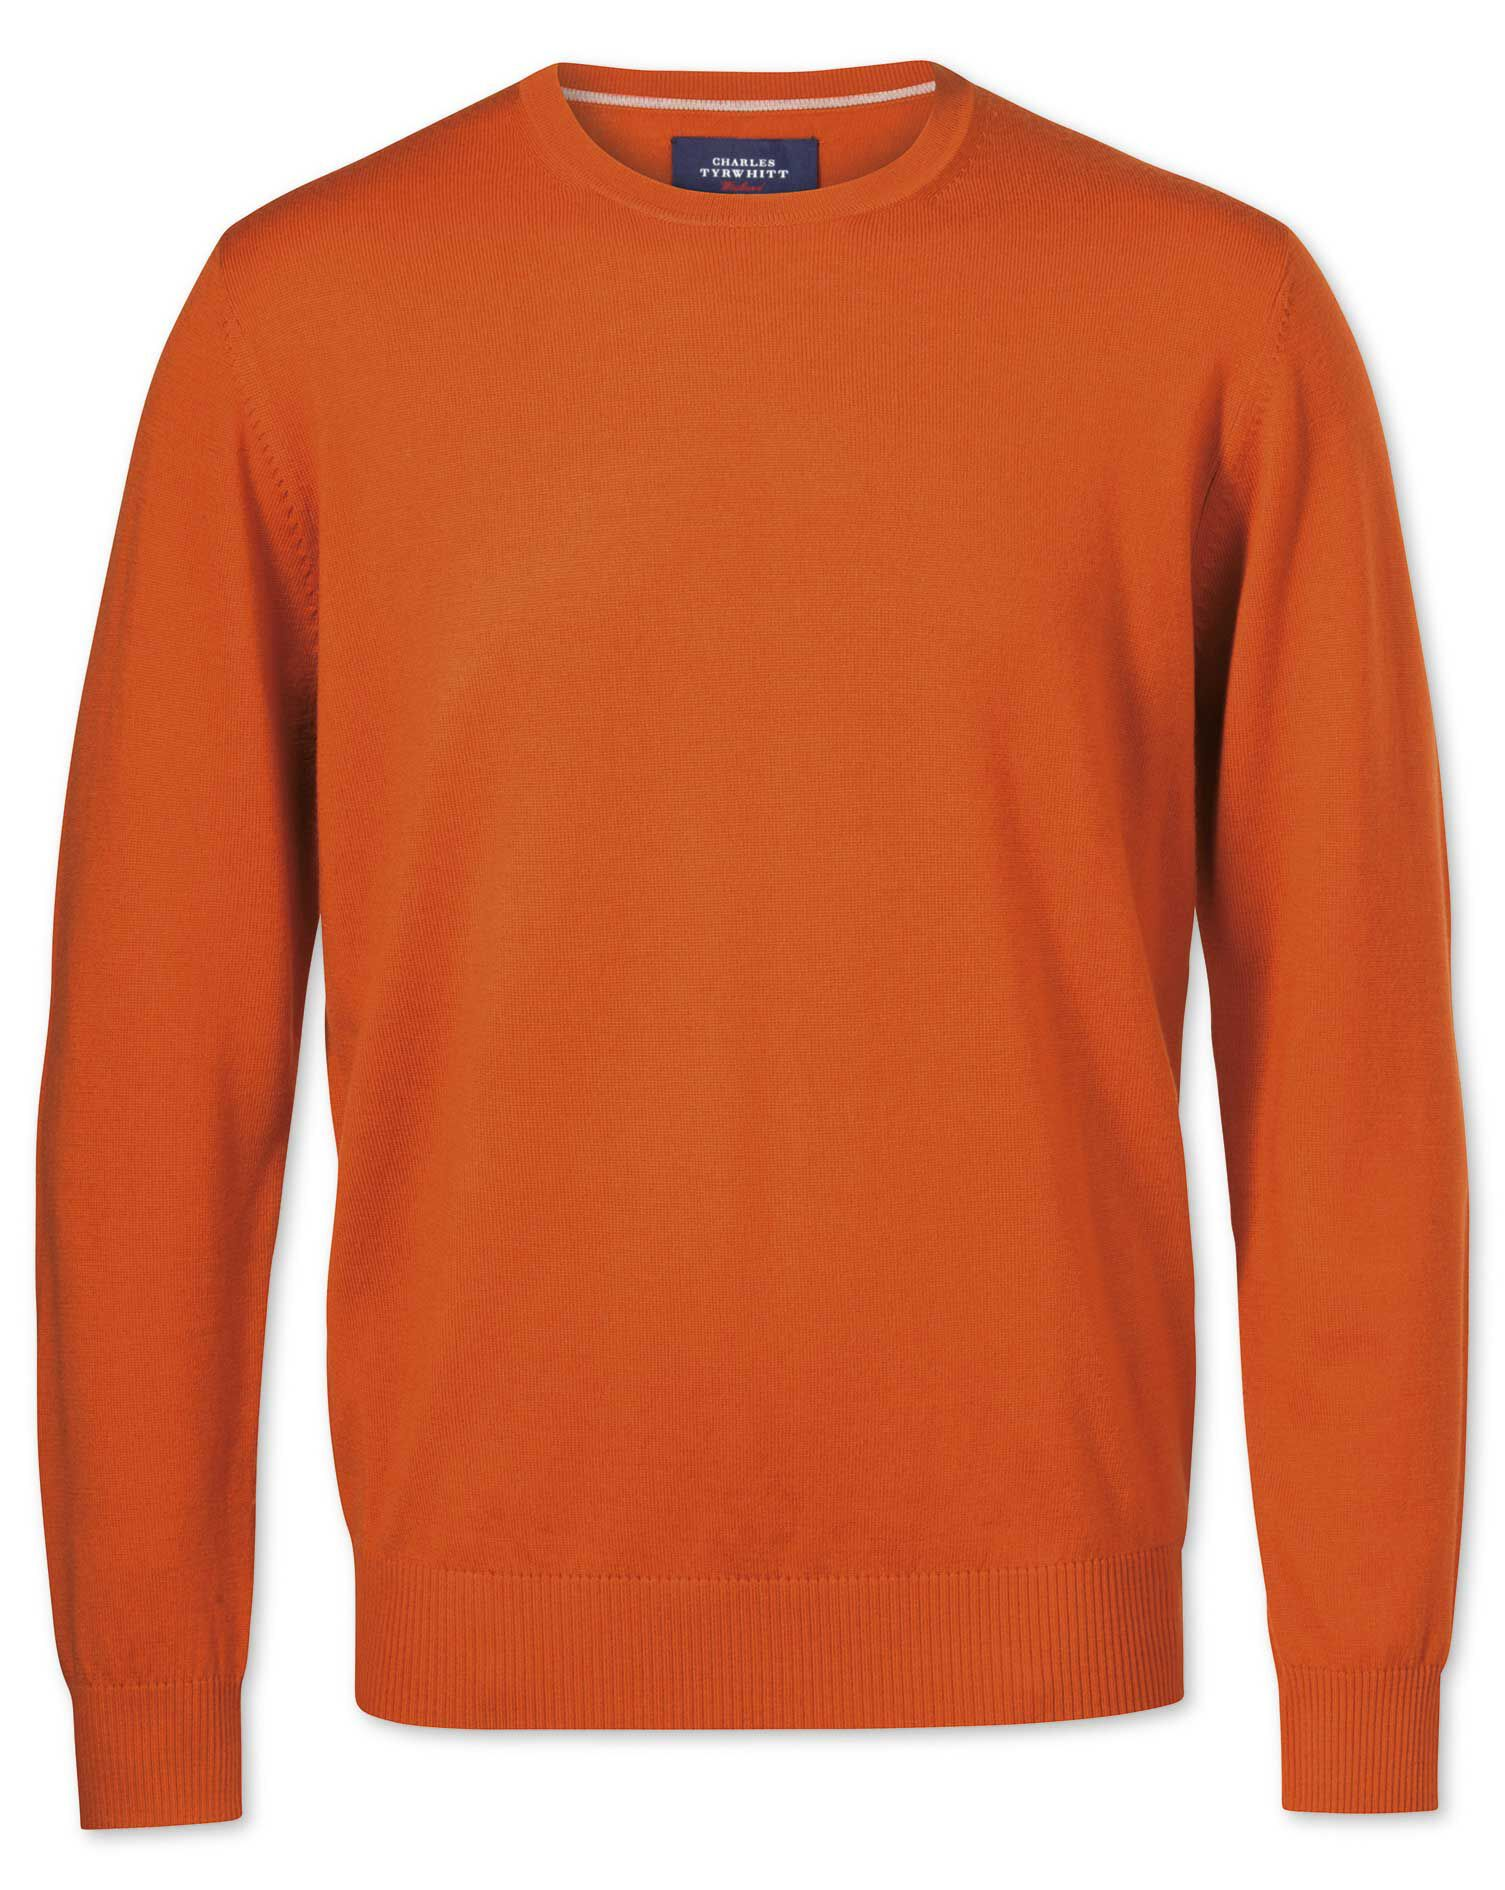 Orange Merino Crew Neck Wool Jumper Size Medium by Charles Tyrwhitt